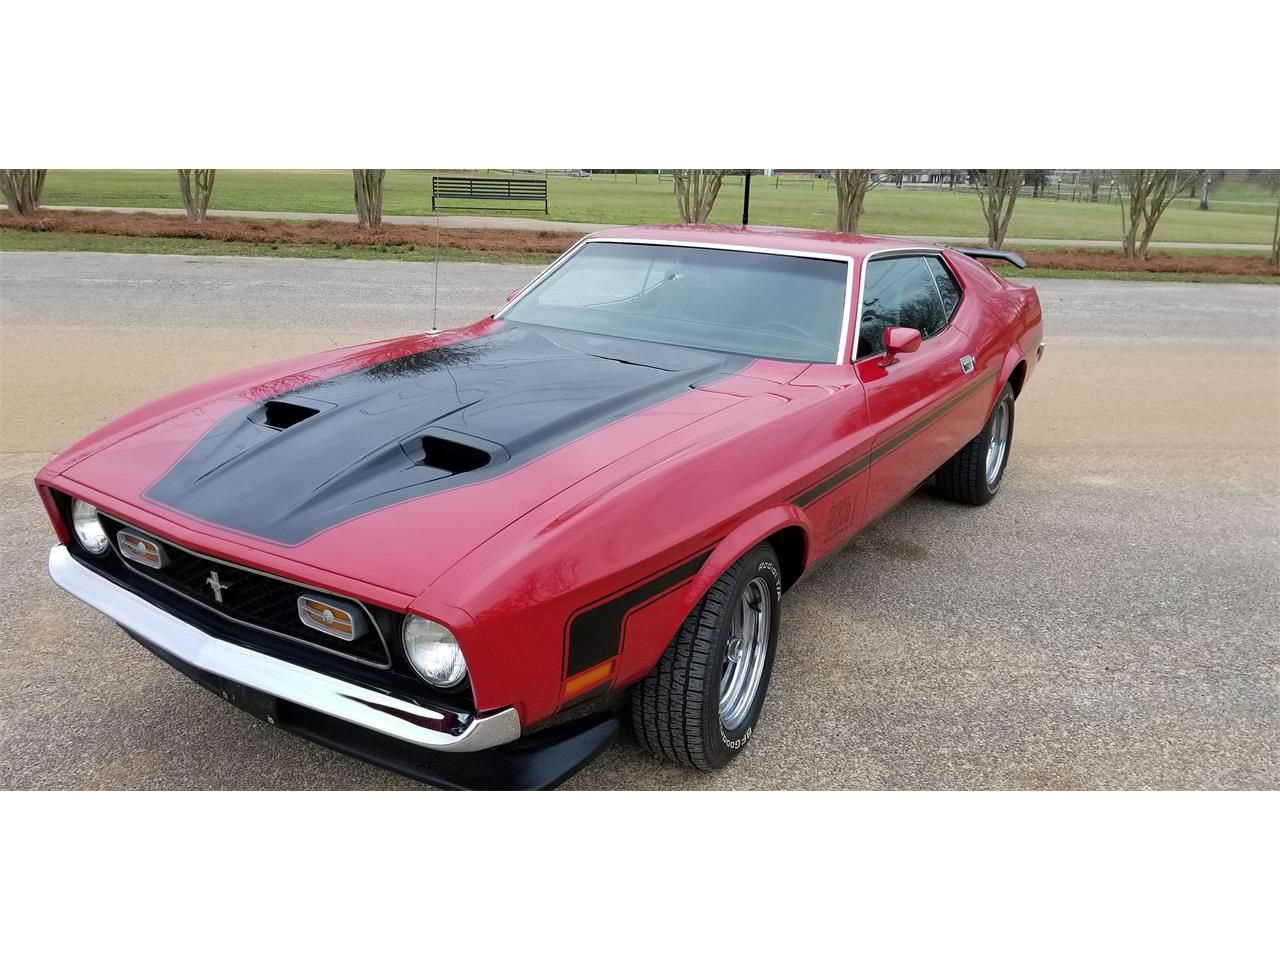 1972 Ford Mustang Mach 1 for Sale | ClassicCars.com | CC-1194021